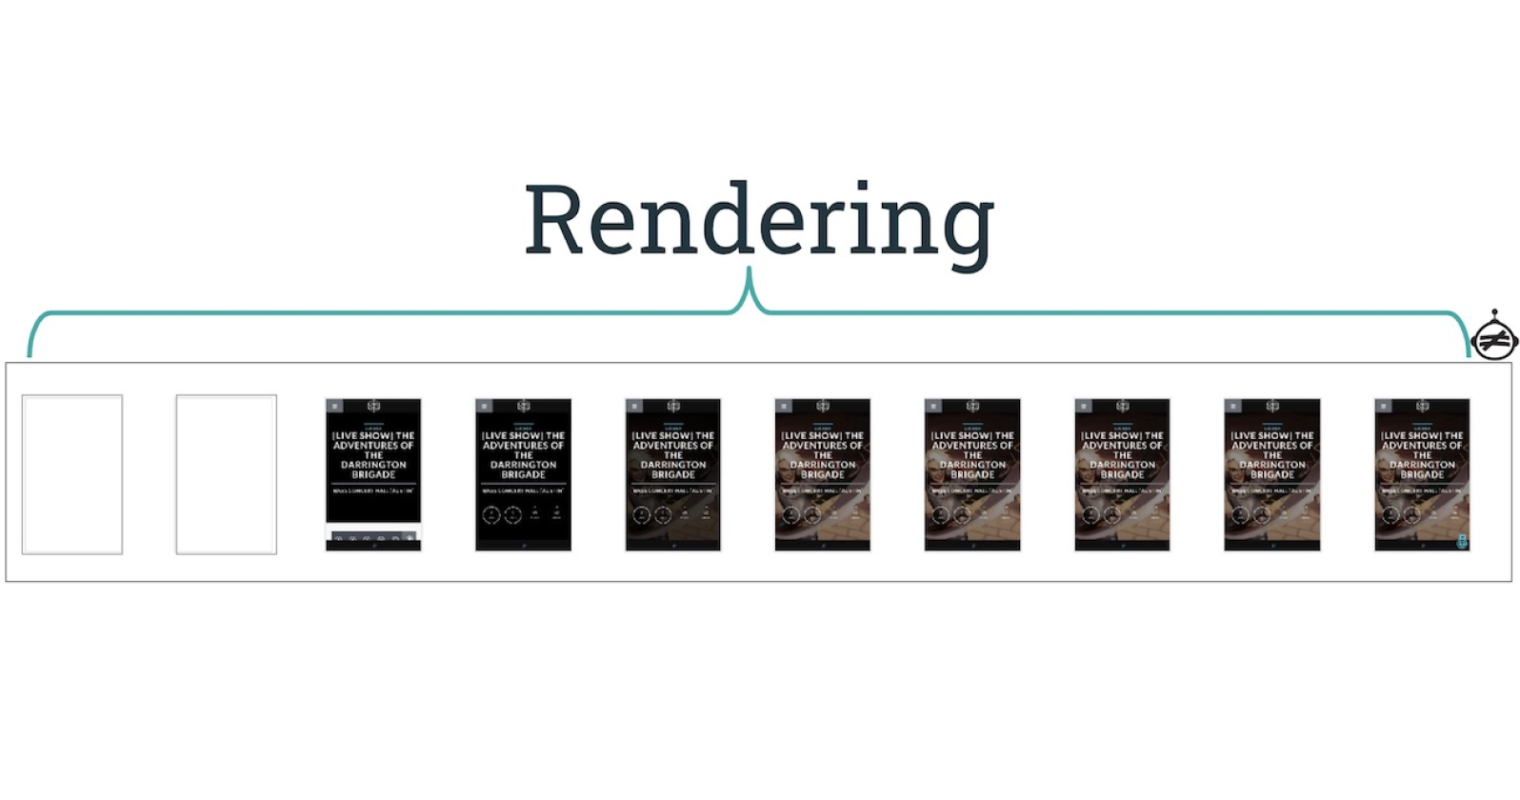 The SEO's Introduction to Rendering